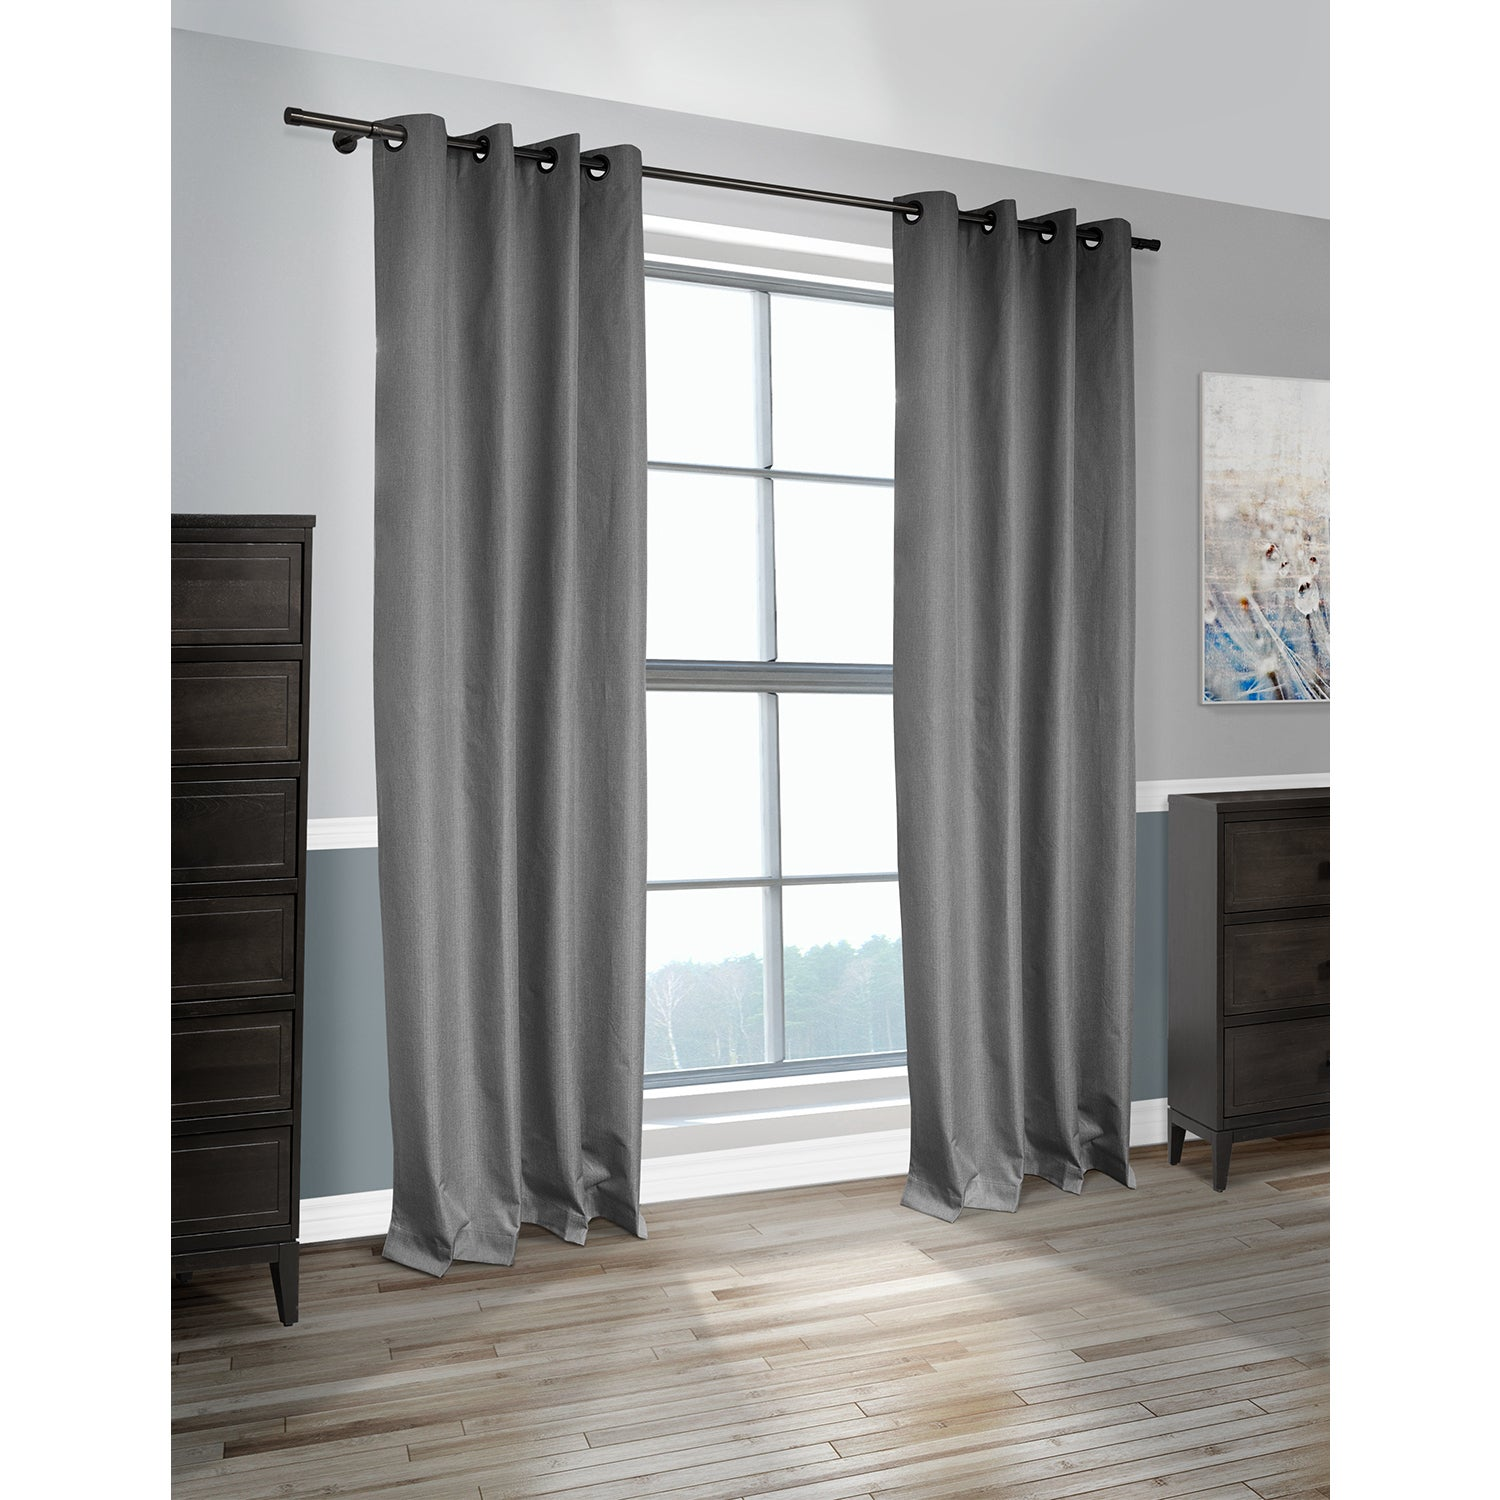 Lite Out Cabo Linen Look Blackout Curtain Panel